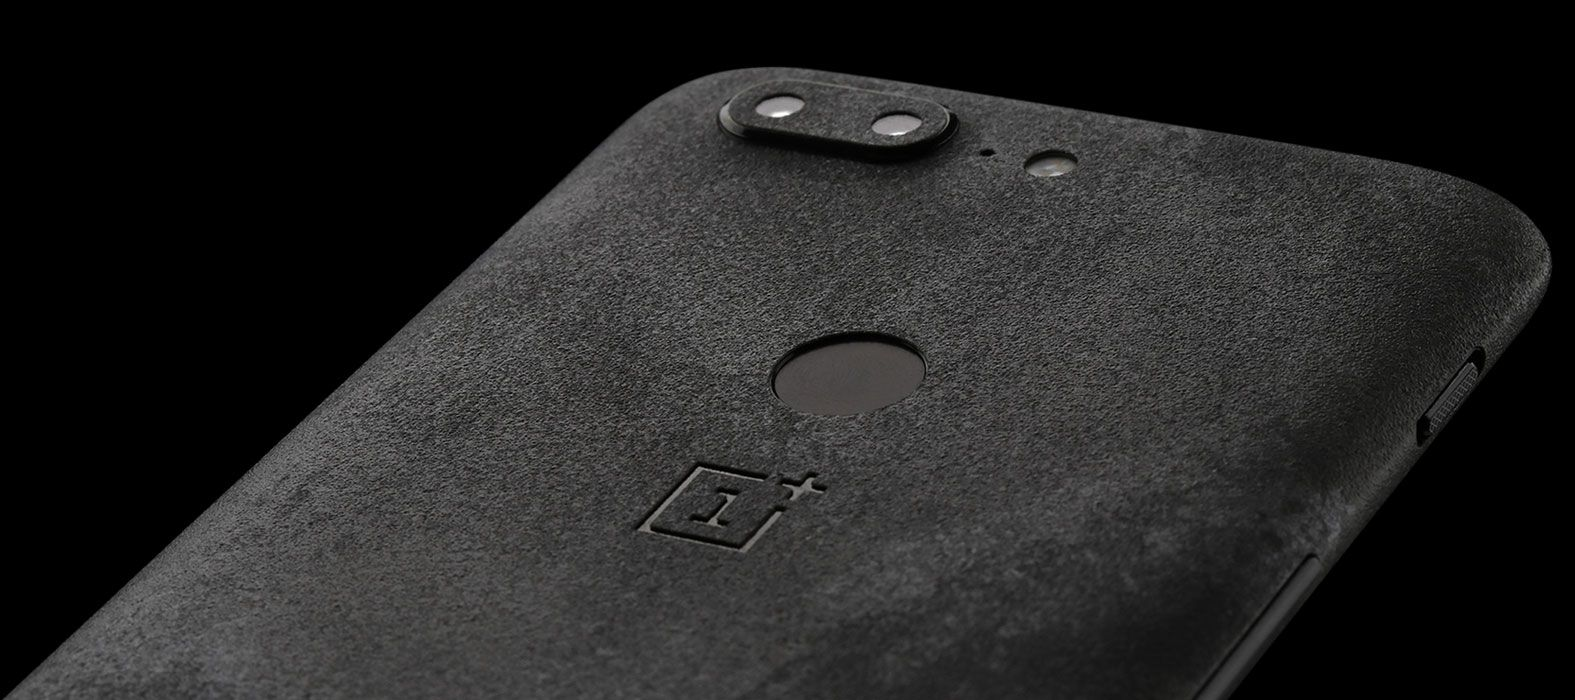 OnePlus 5T Skins, Decals, Wraps - Black Grunge